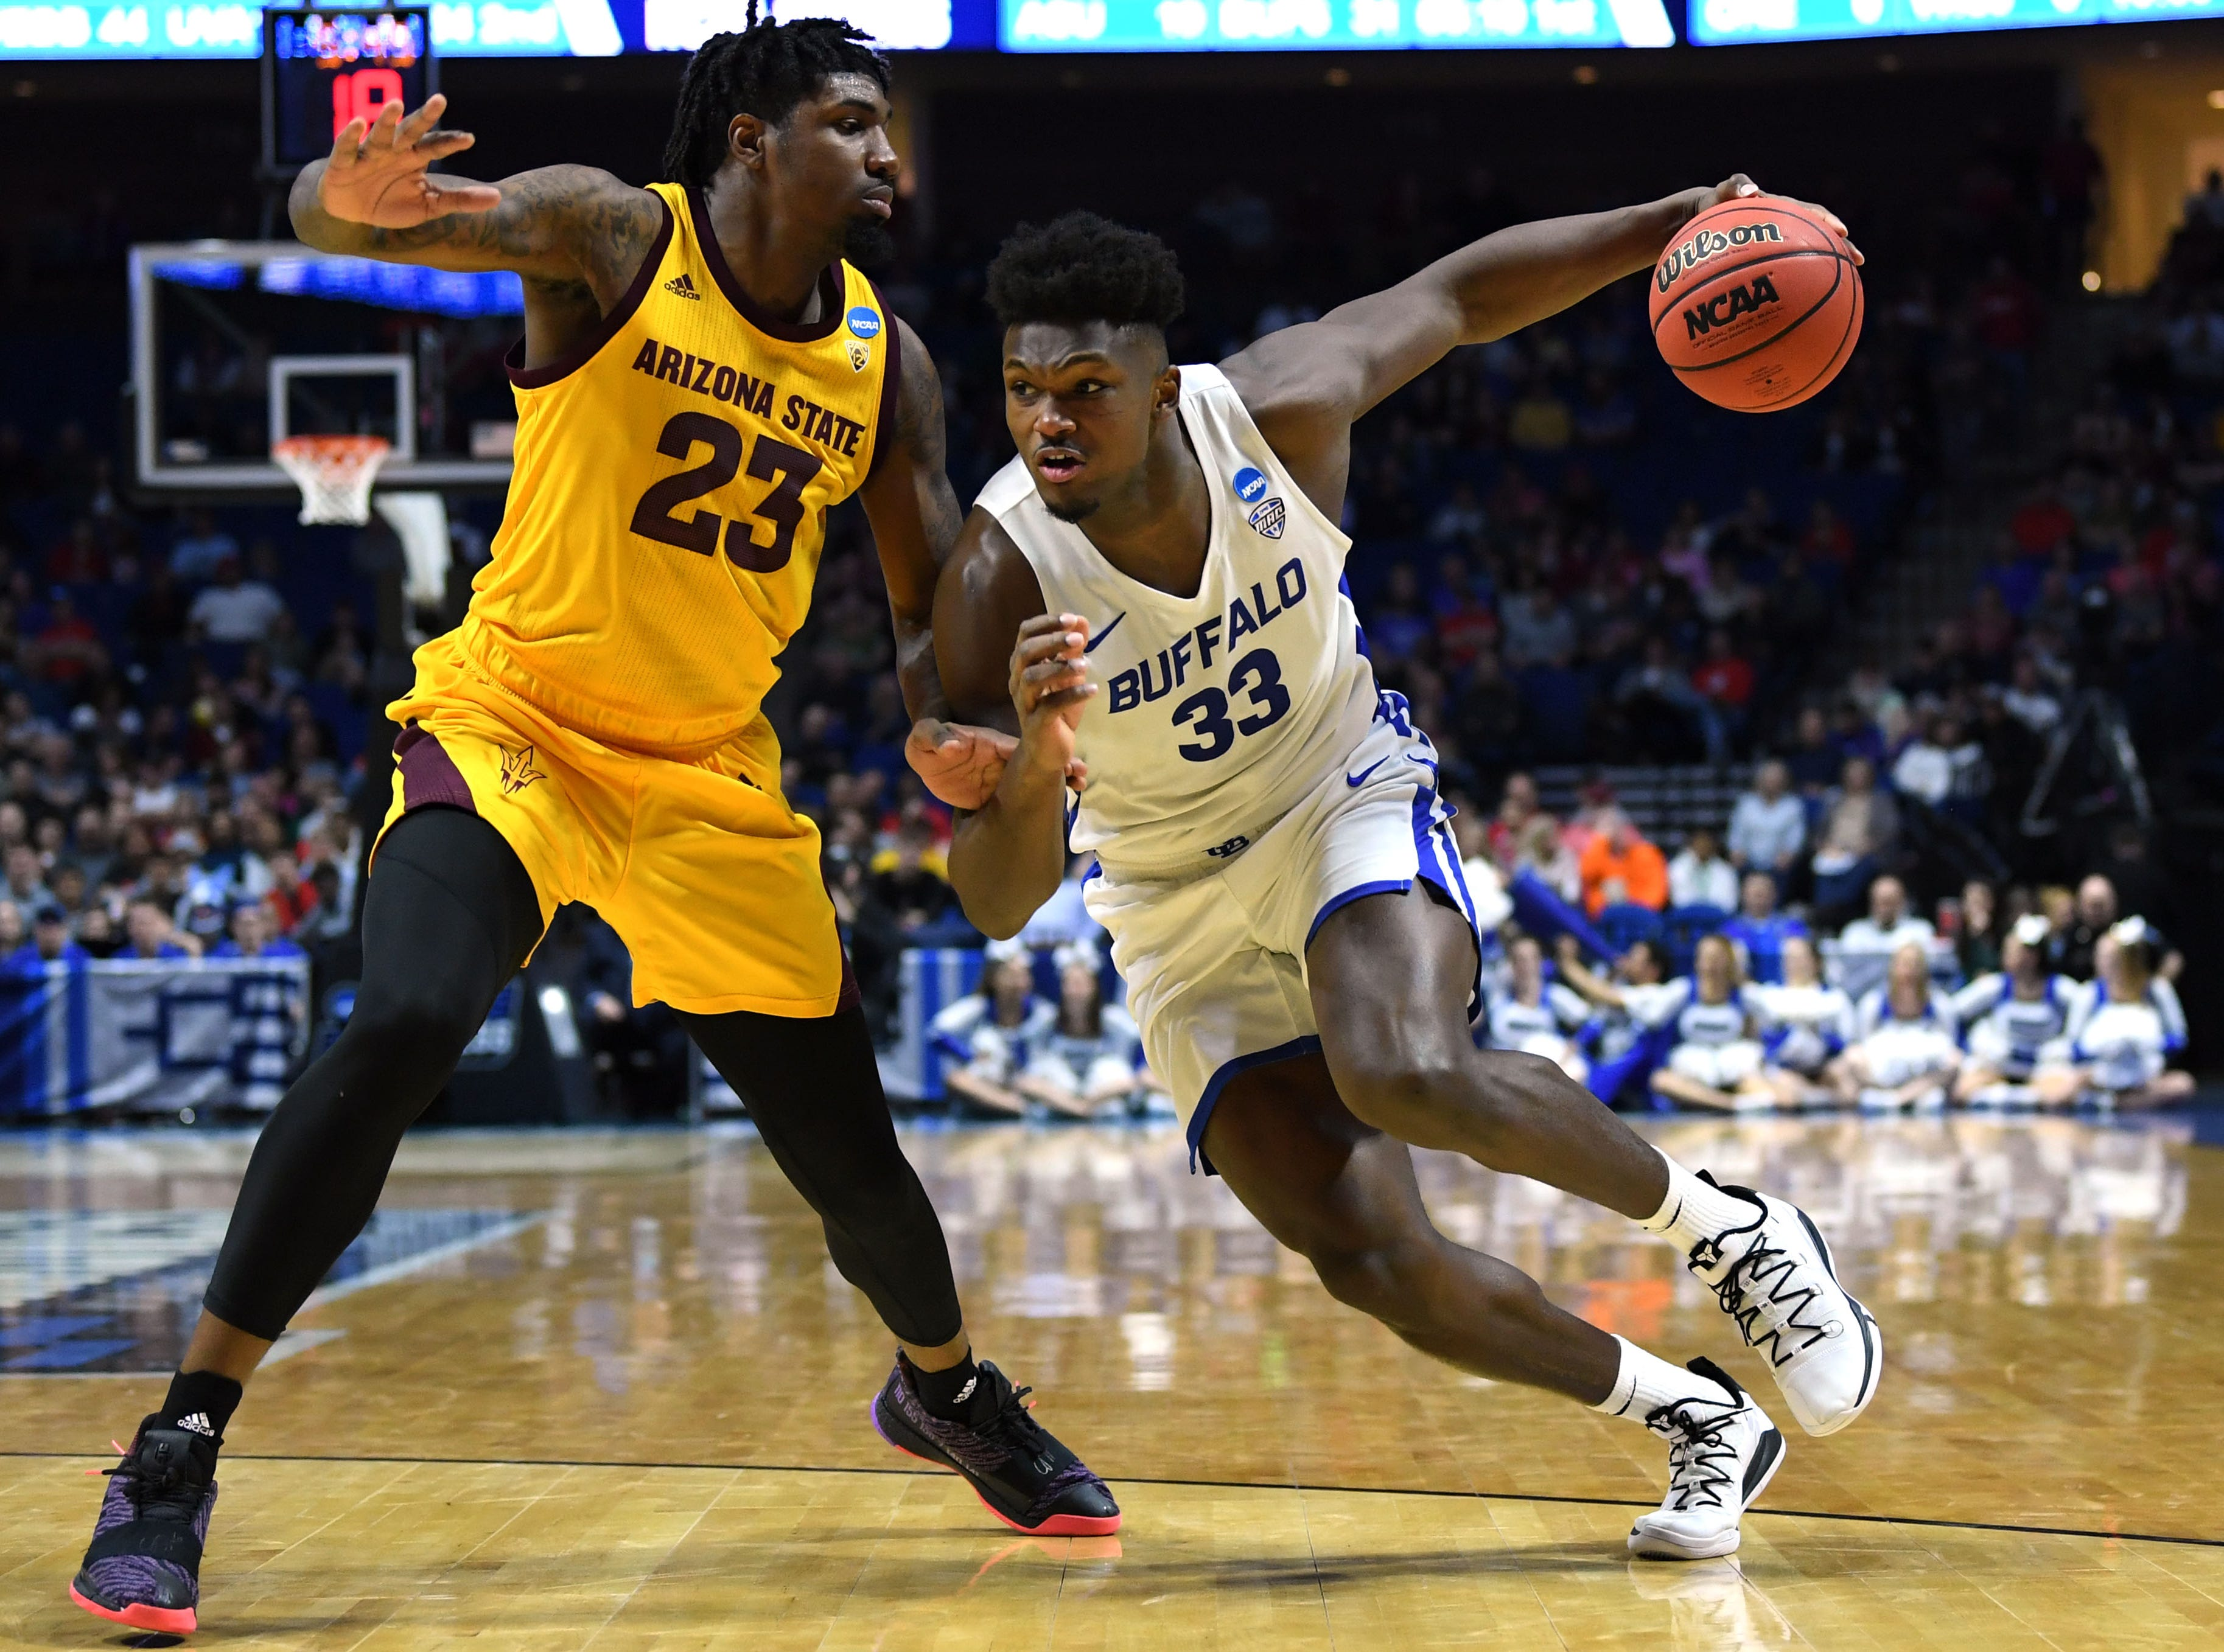 TULSA, OKLAHOMA - MARCH 22:  Nick Perkins #33 of the Buffalo Bulls drives on Romello White #23 of the Arizona State Sun Devils during the first half of the first round game of the 2019 NCAA Men's Basketball Tournament at BOK Center on March 22, 2019 in Tulsa, Oklahoma. (Photo by Harry How/Getty Images)